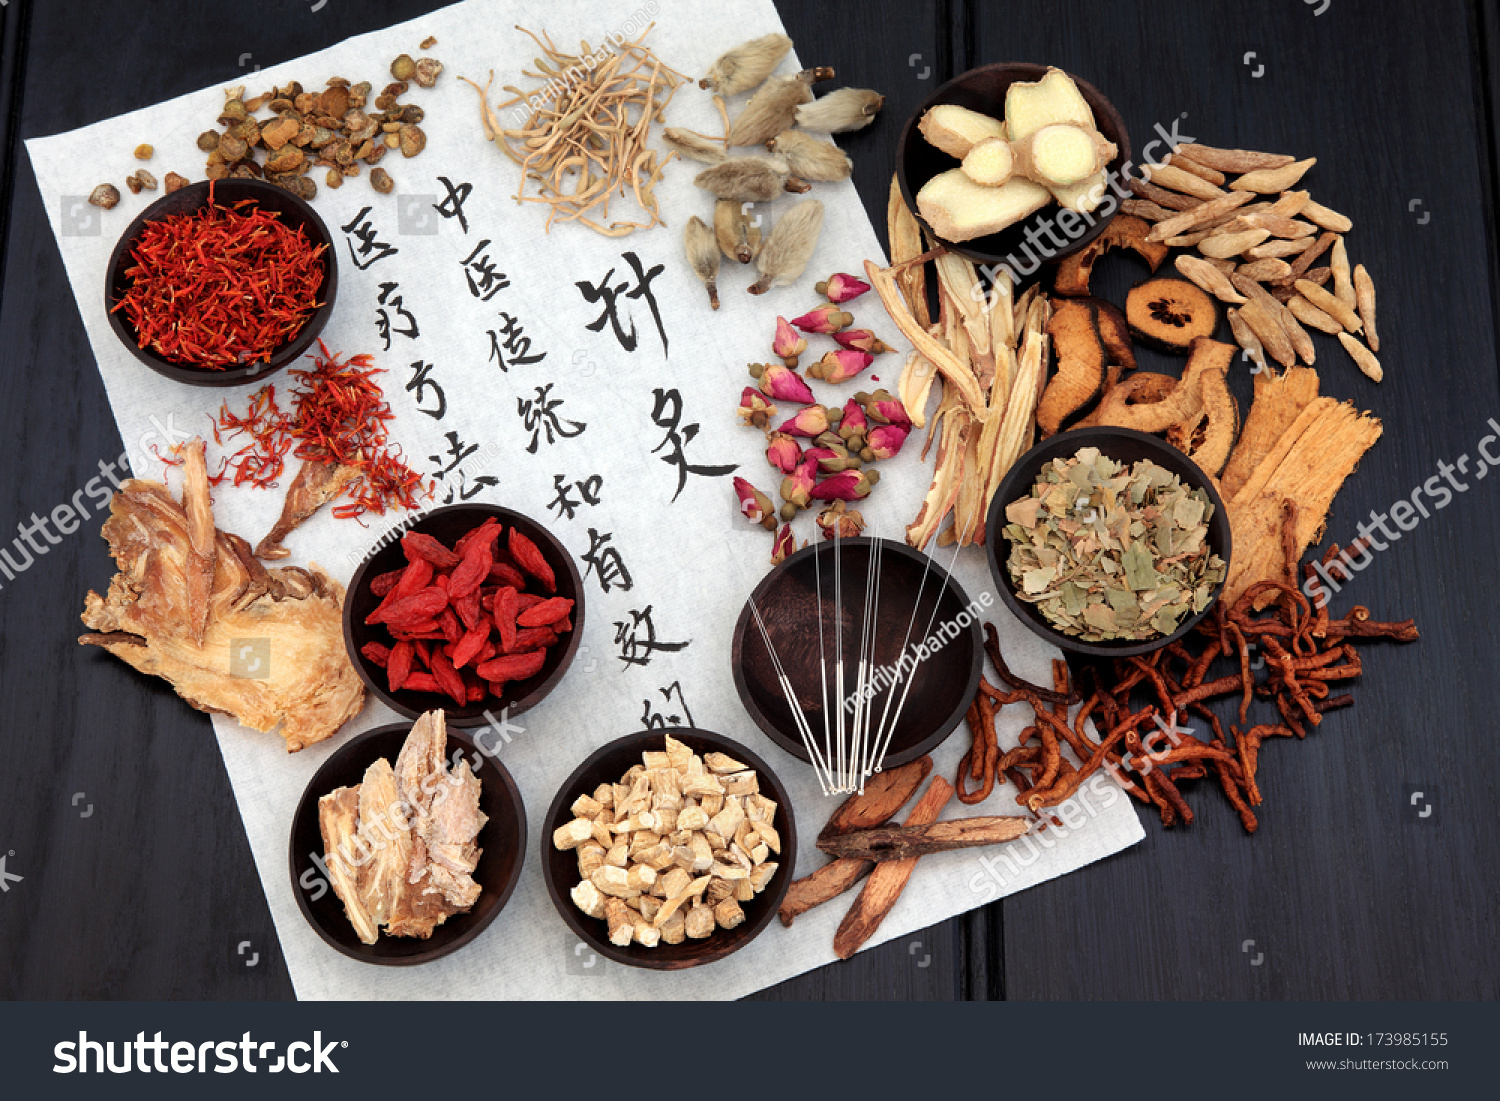 Chinese Herbal Medicine Selection With Acupuncture Needles